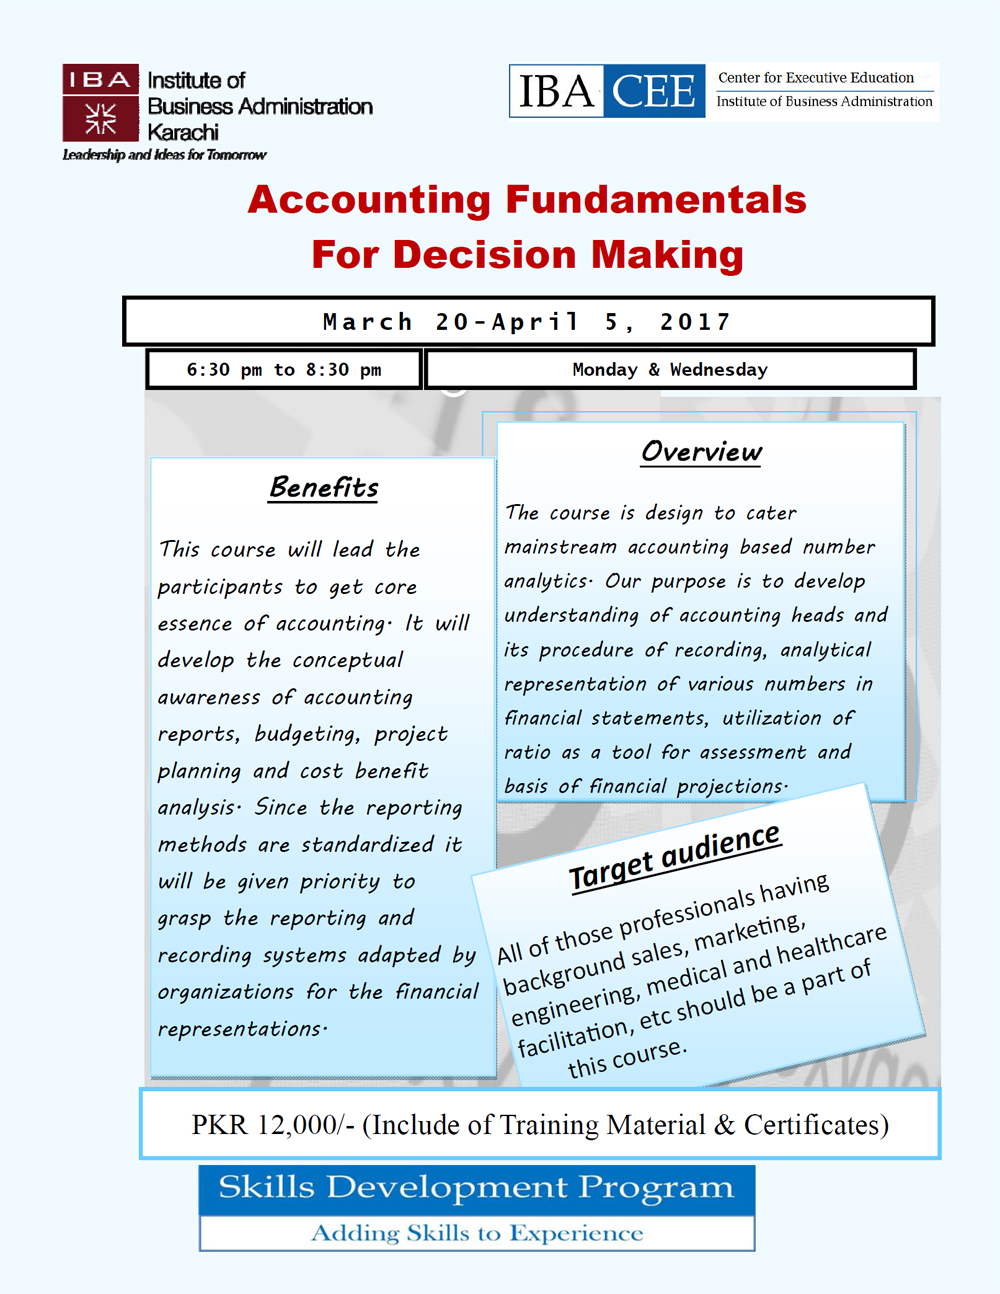 Accounting Fundamentals For Decision Making